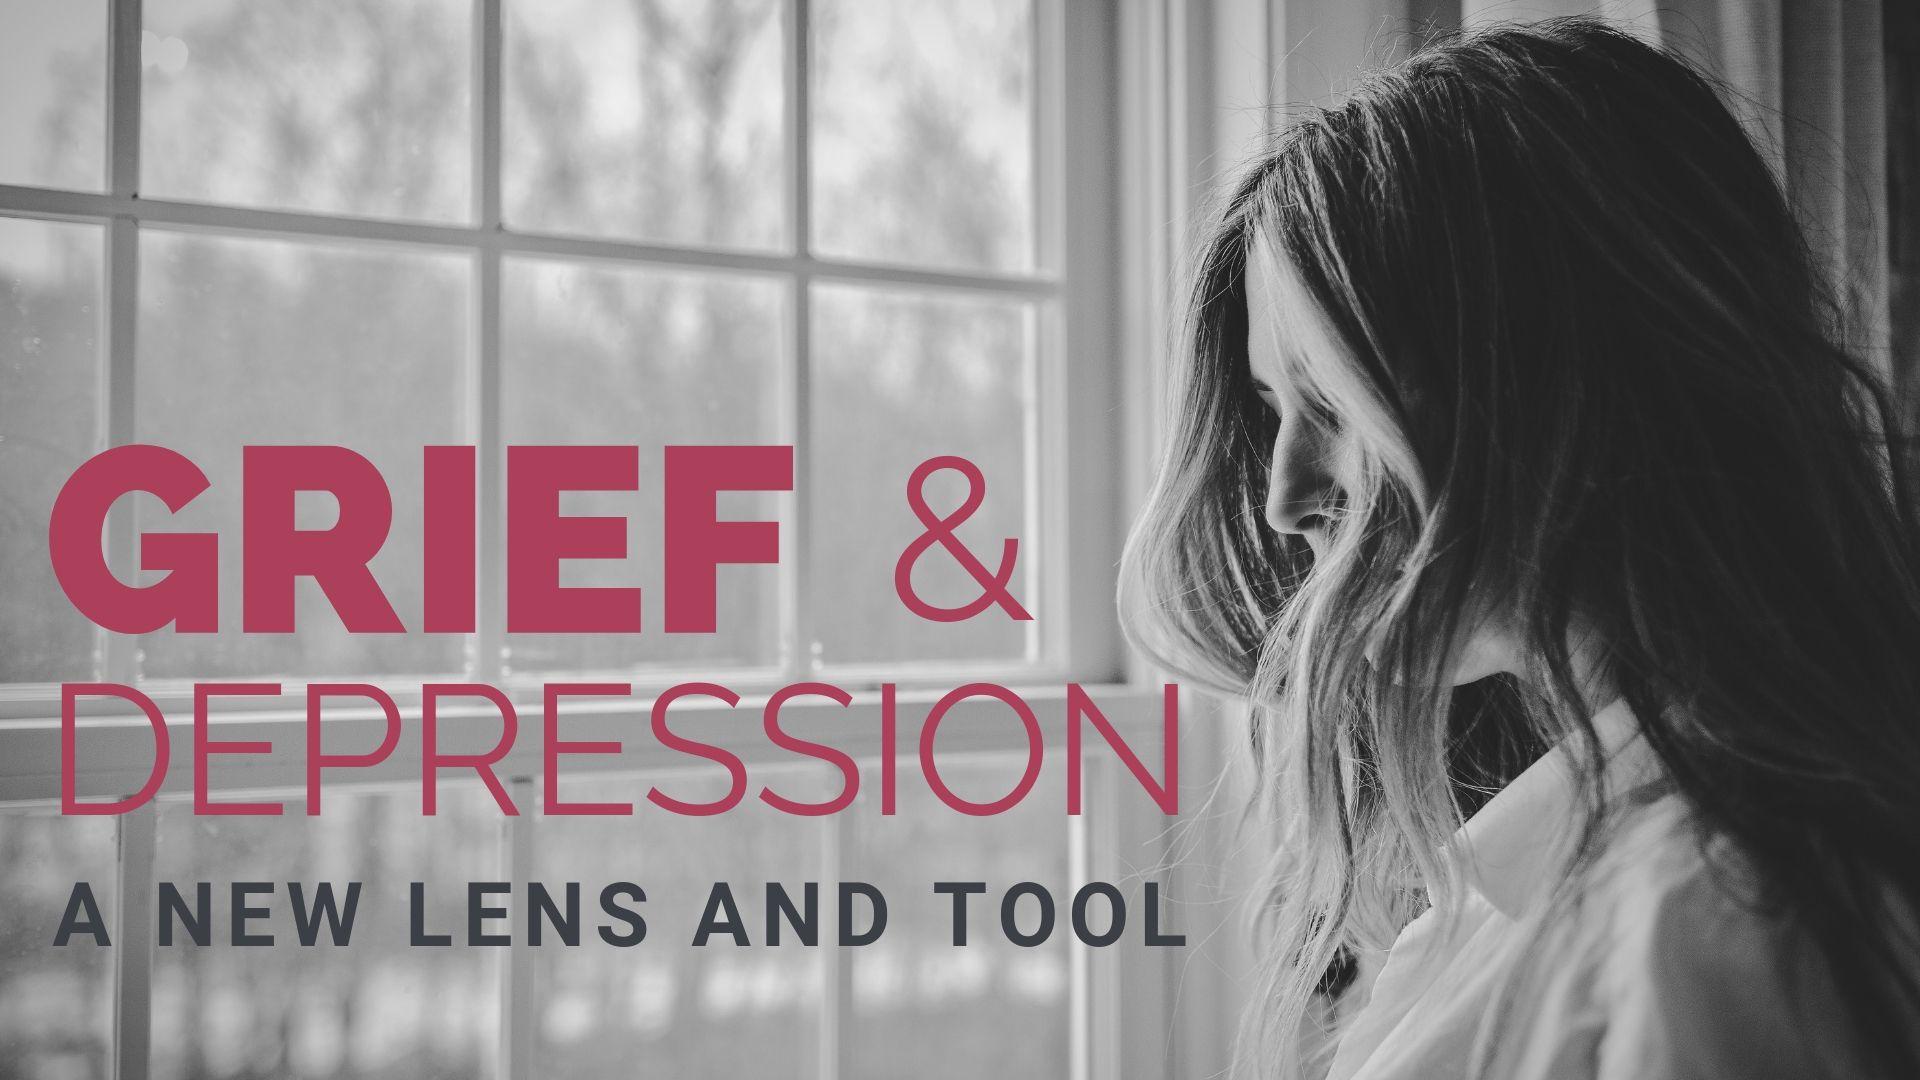 Grief and Depression a new lens and tool